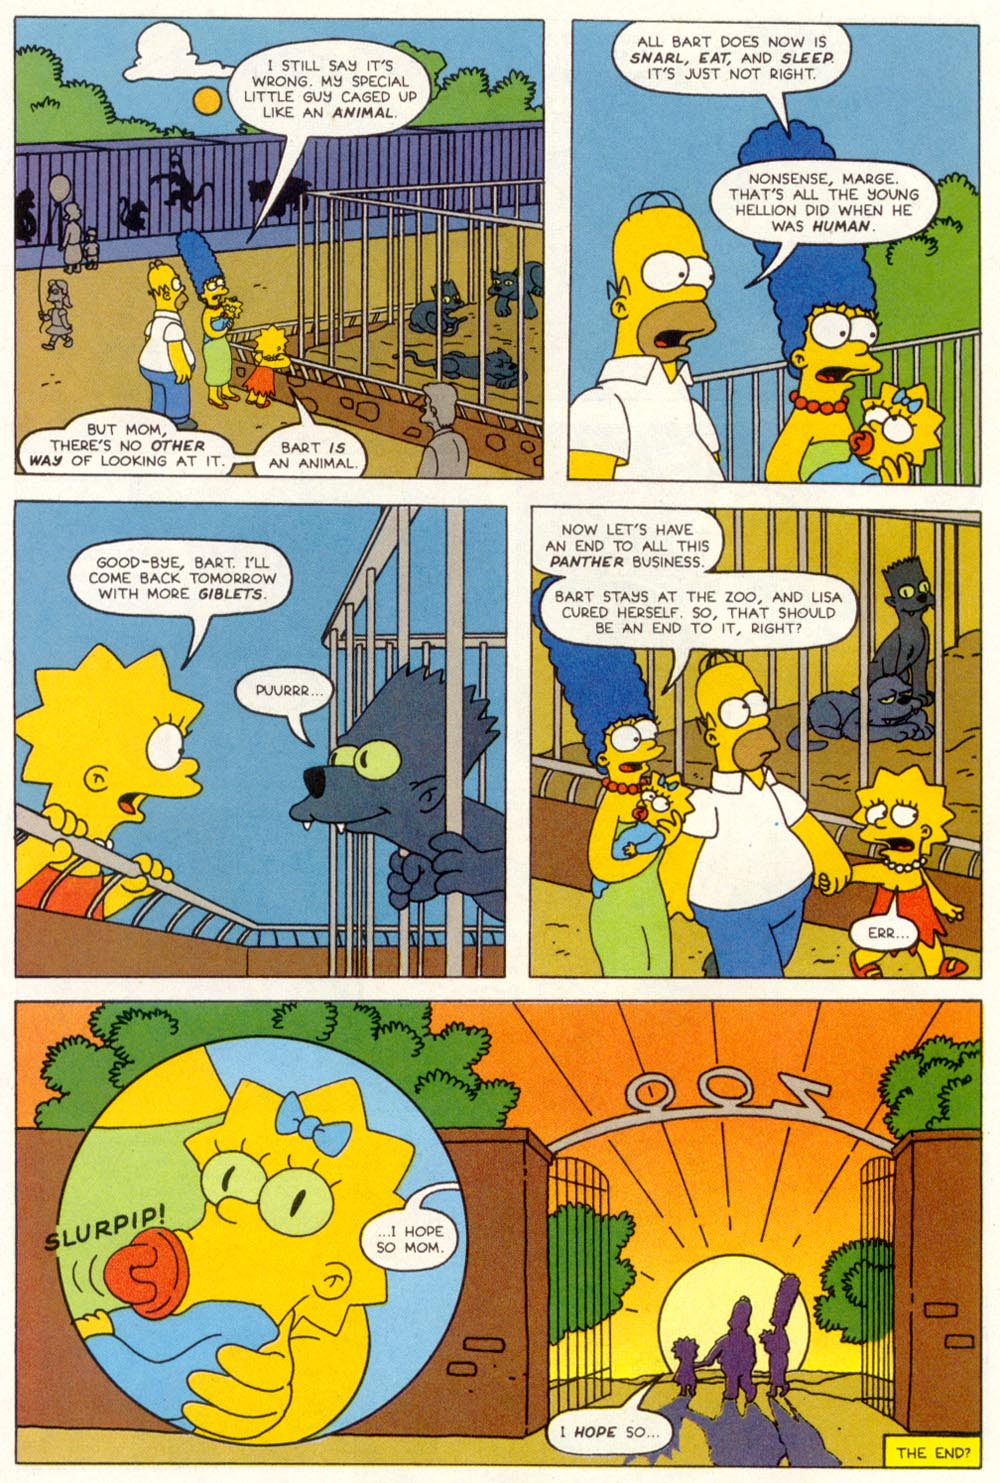 Read online Treehouse of Horror comic -  Issue #1 - 46